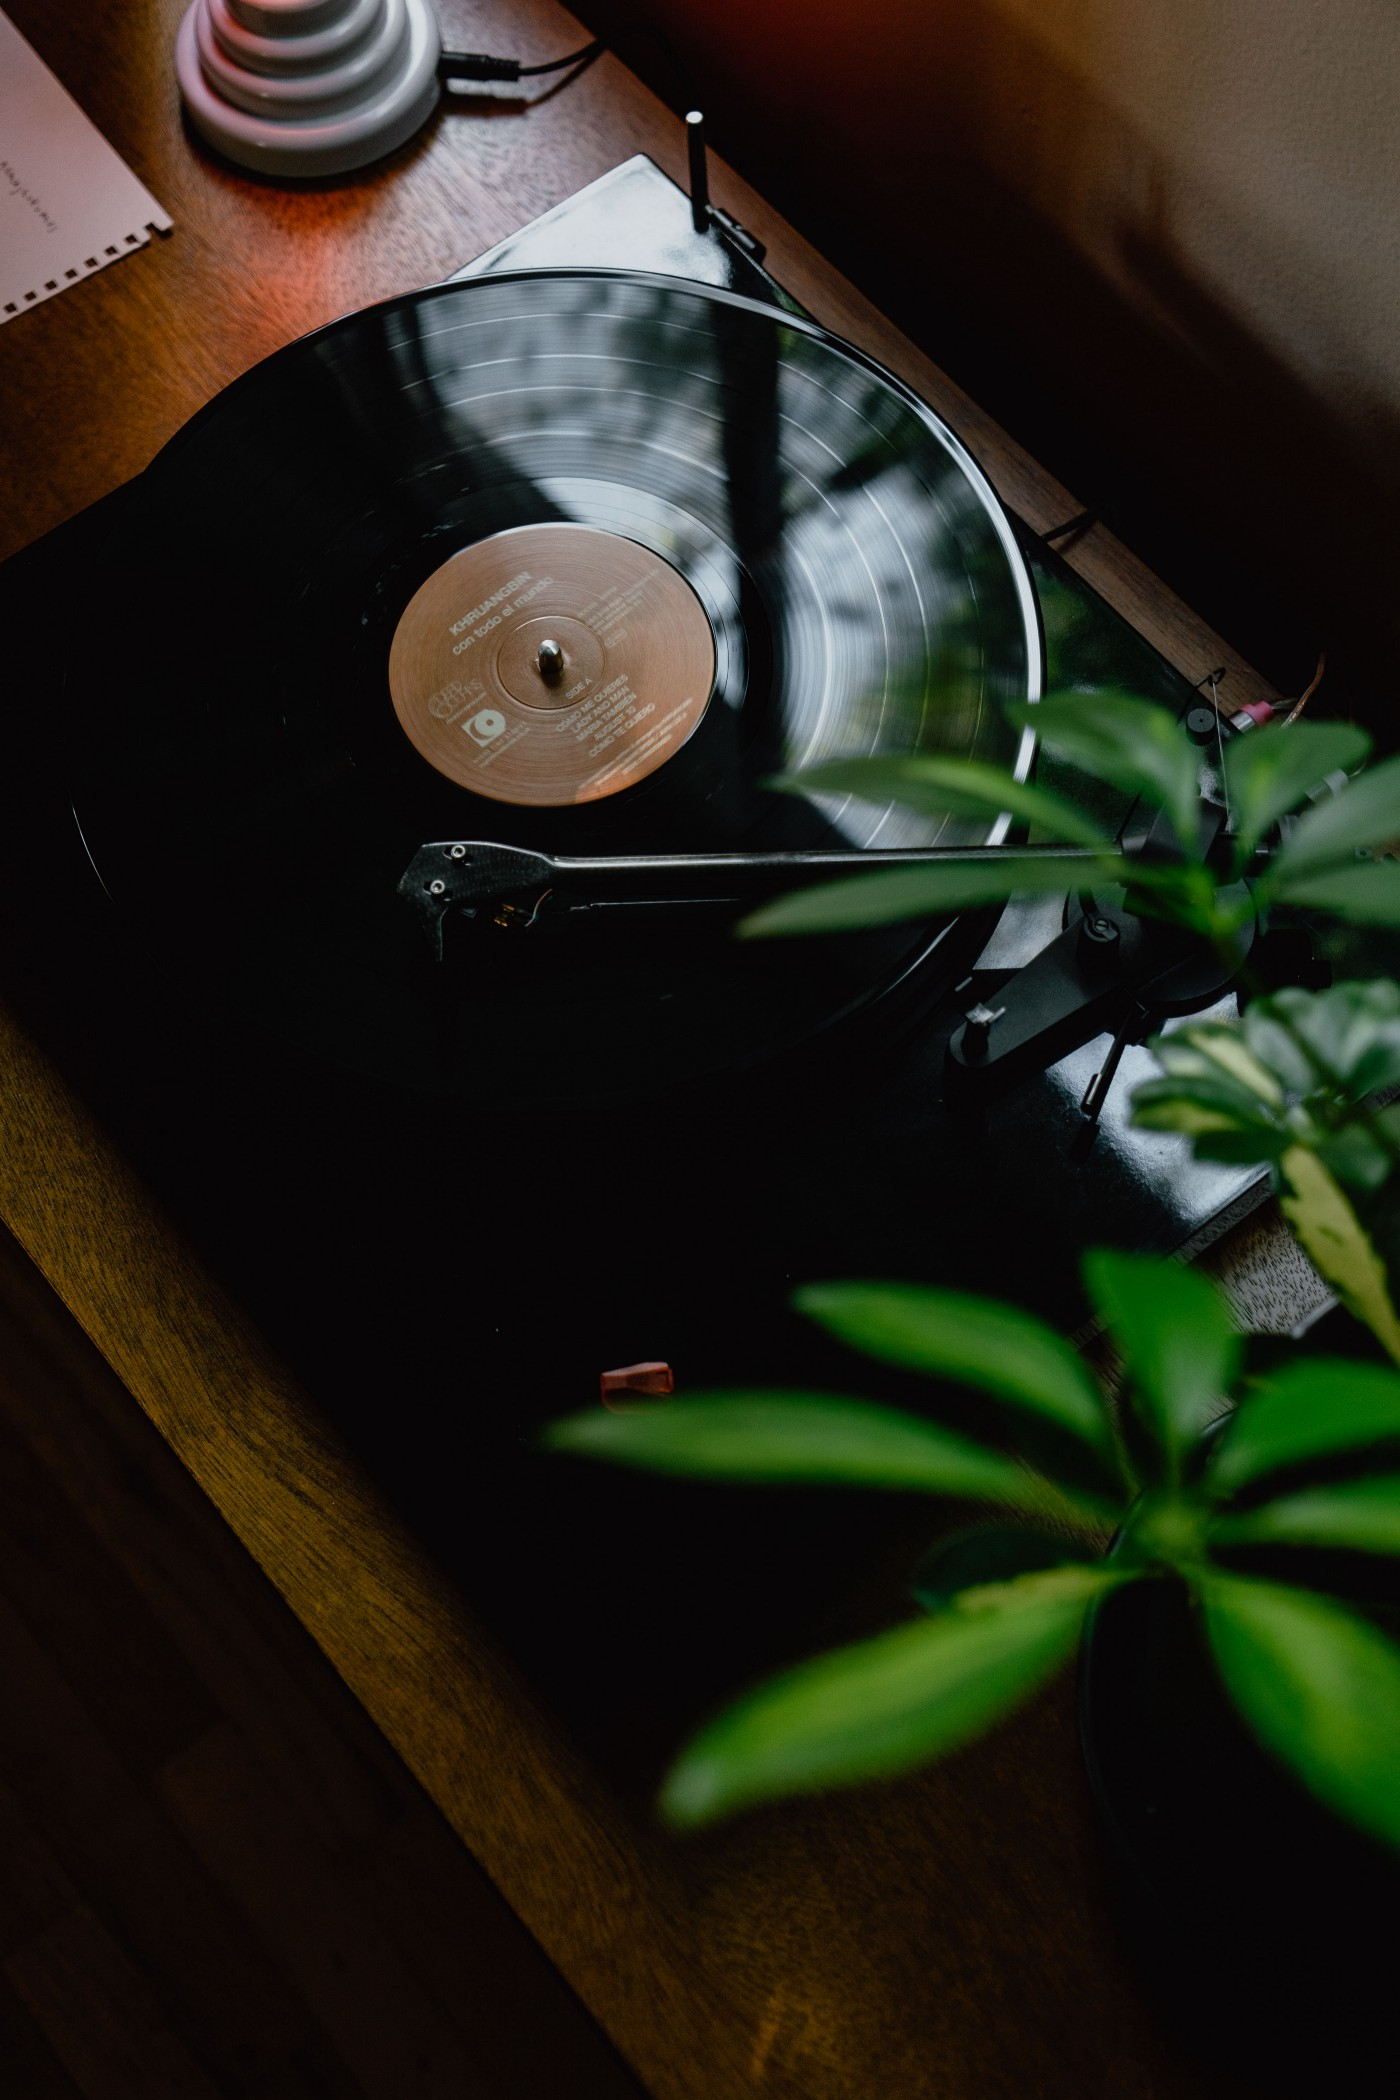 The image shows a record on an turntable. Next to the image of the dark record are the green leaves of a beautiful house plant.